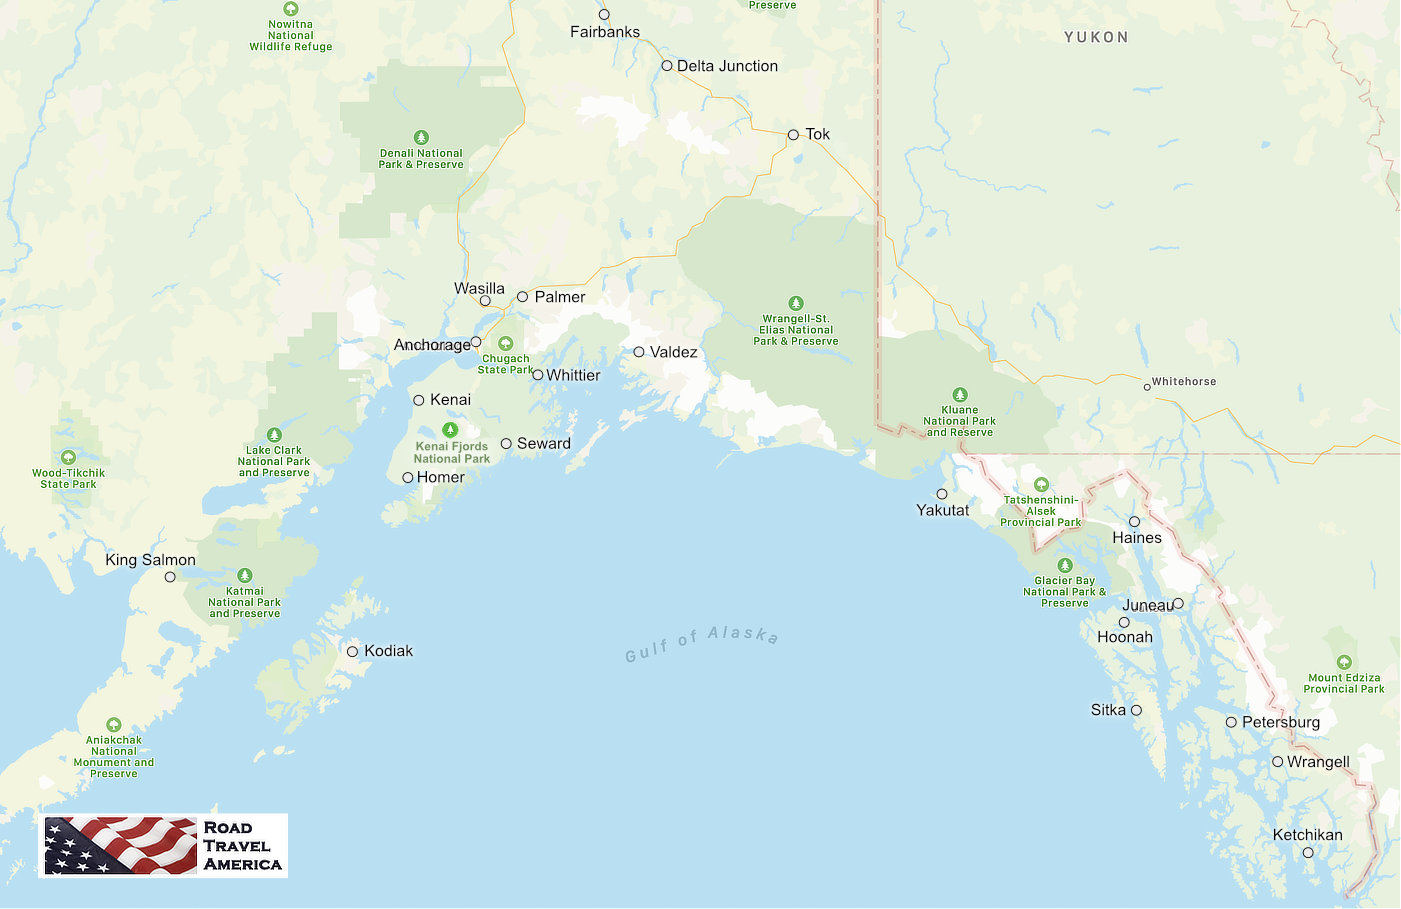 Map showing the locations of major cities, travel destinations and national parks in Alaska